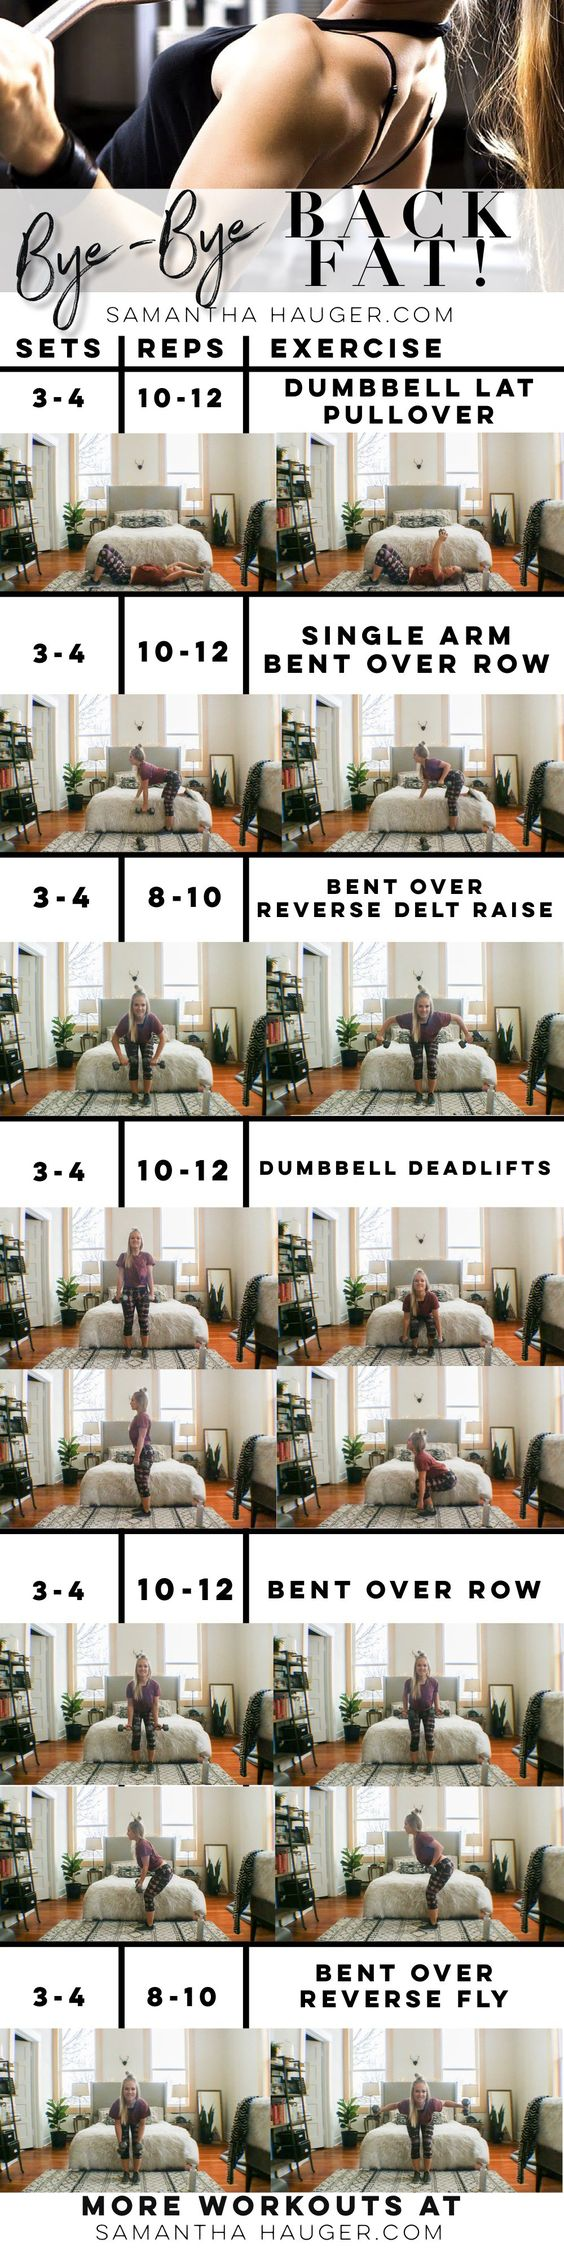 18 Fat Burning Back Workouts That Will Sculpt And Define Your Back ...